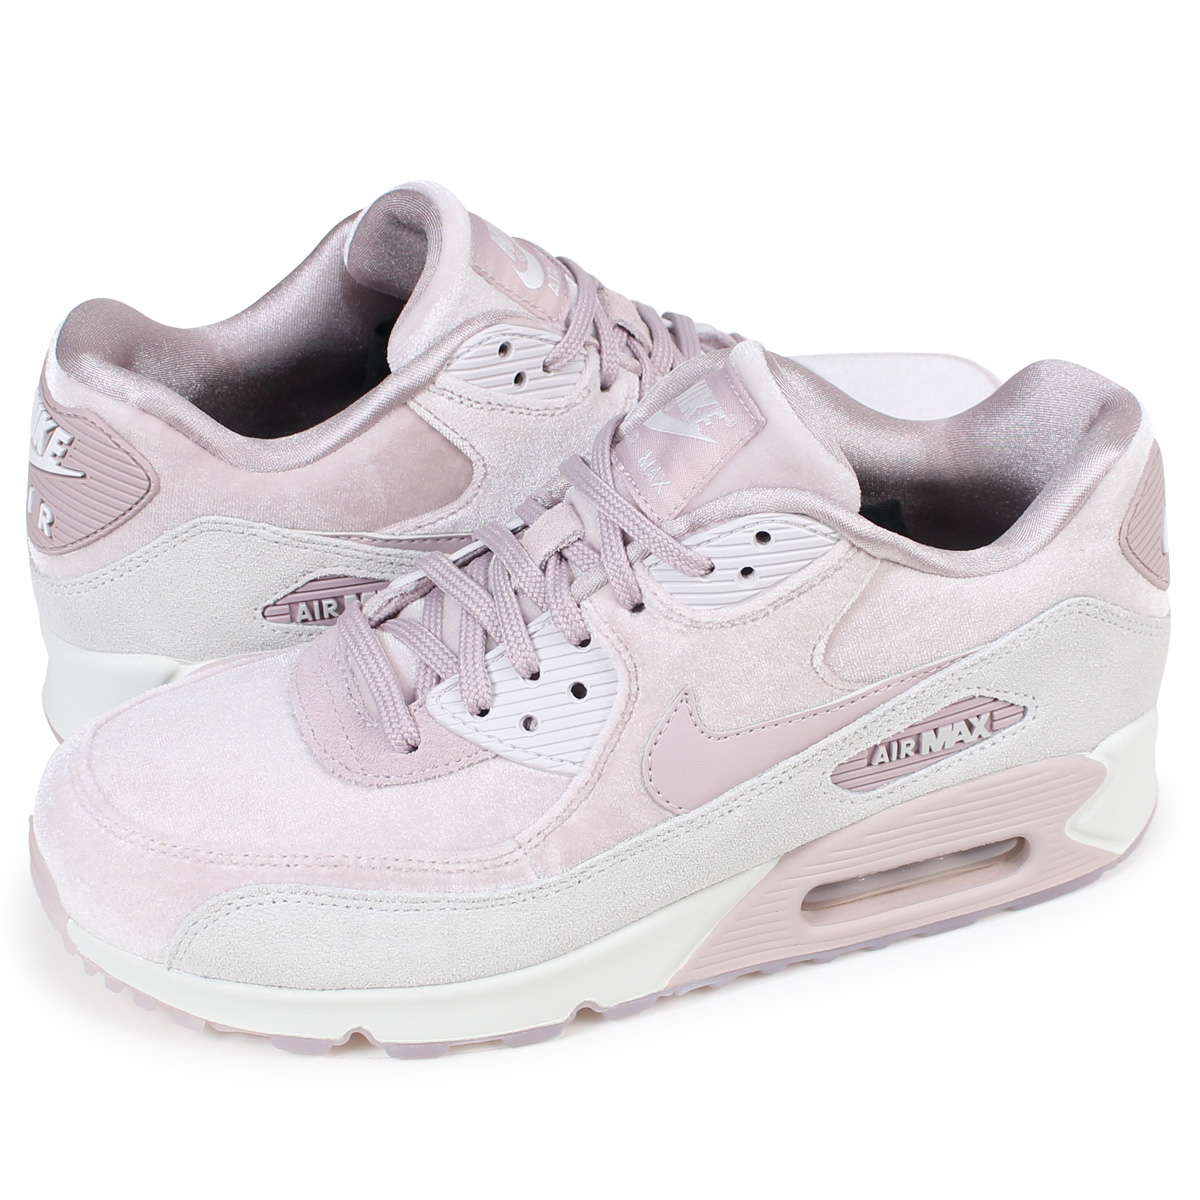 new arrival 277db d2bfd NIKE WMNS AIR MAX 90 LX Kie Ney AMAX 90 Lady's sneakers 898,512-600 shoes  pink [1/9 Shinnyu load] [1801]